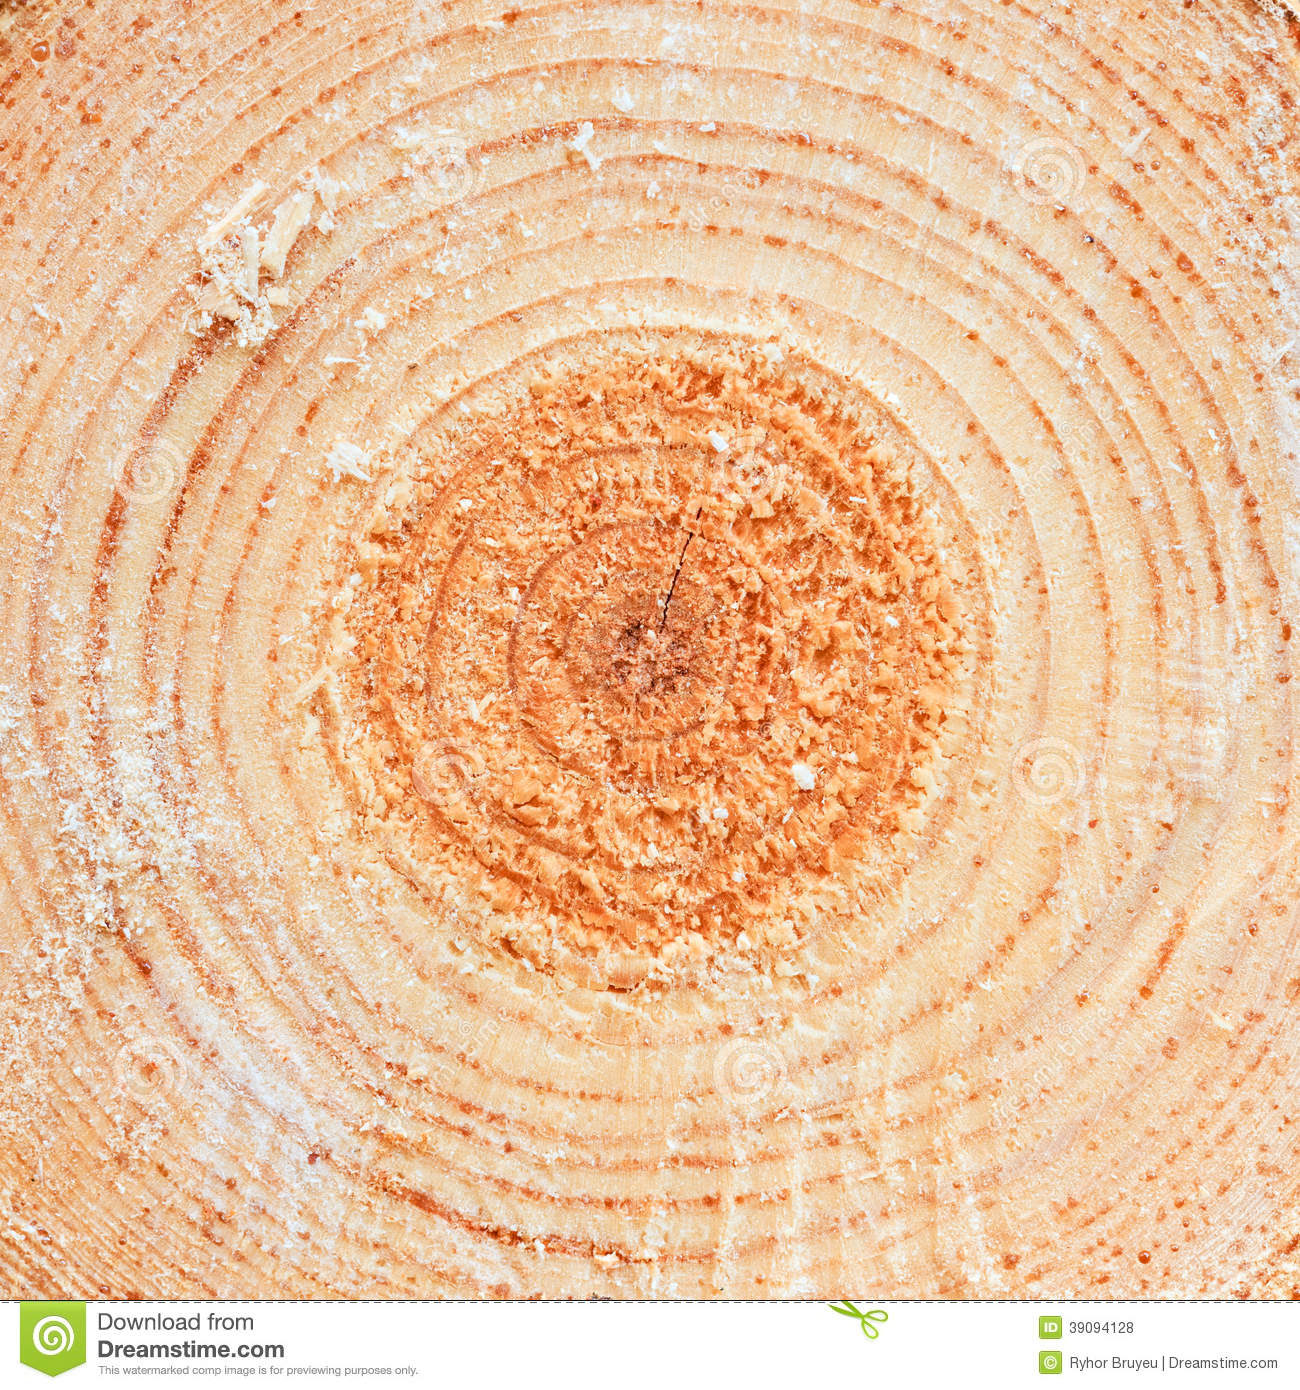 Annual rings on sawn pine tree timber wood stock photo for Pine tree timber